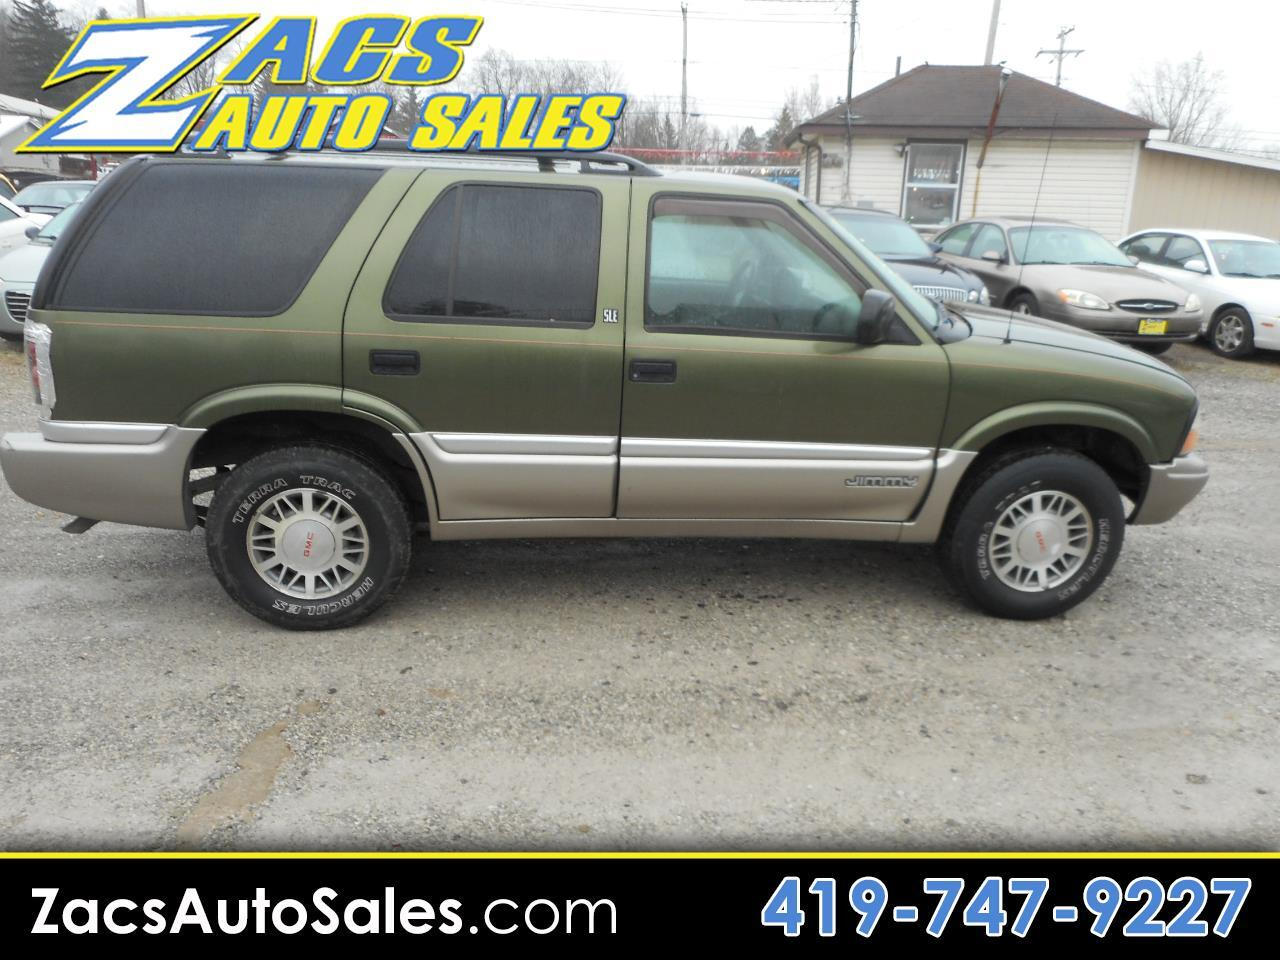 2001 GMC Jimmy SLE 4-Door 4WD